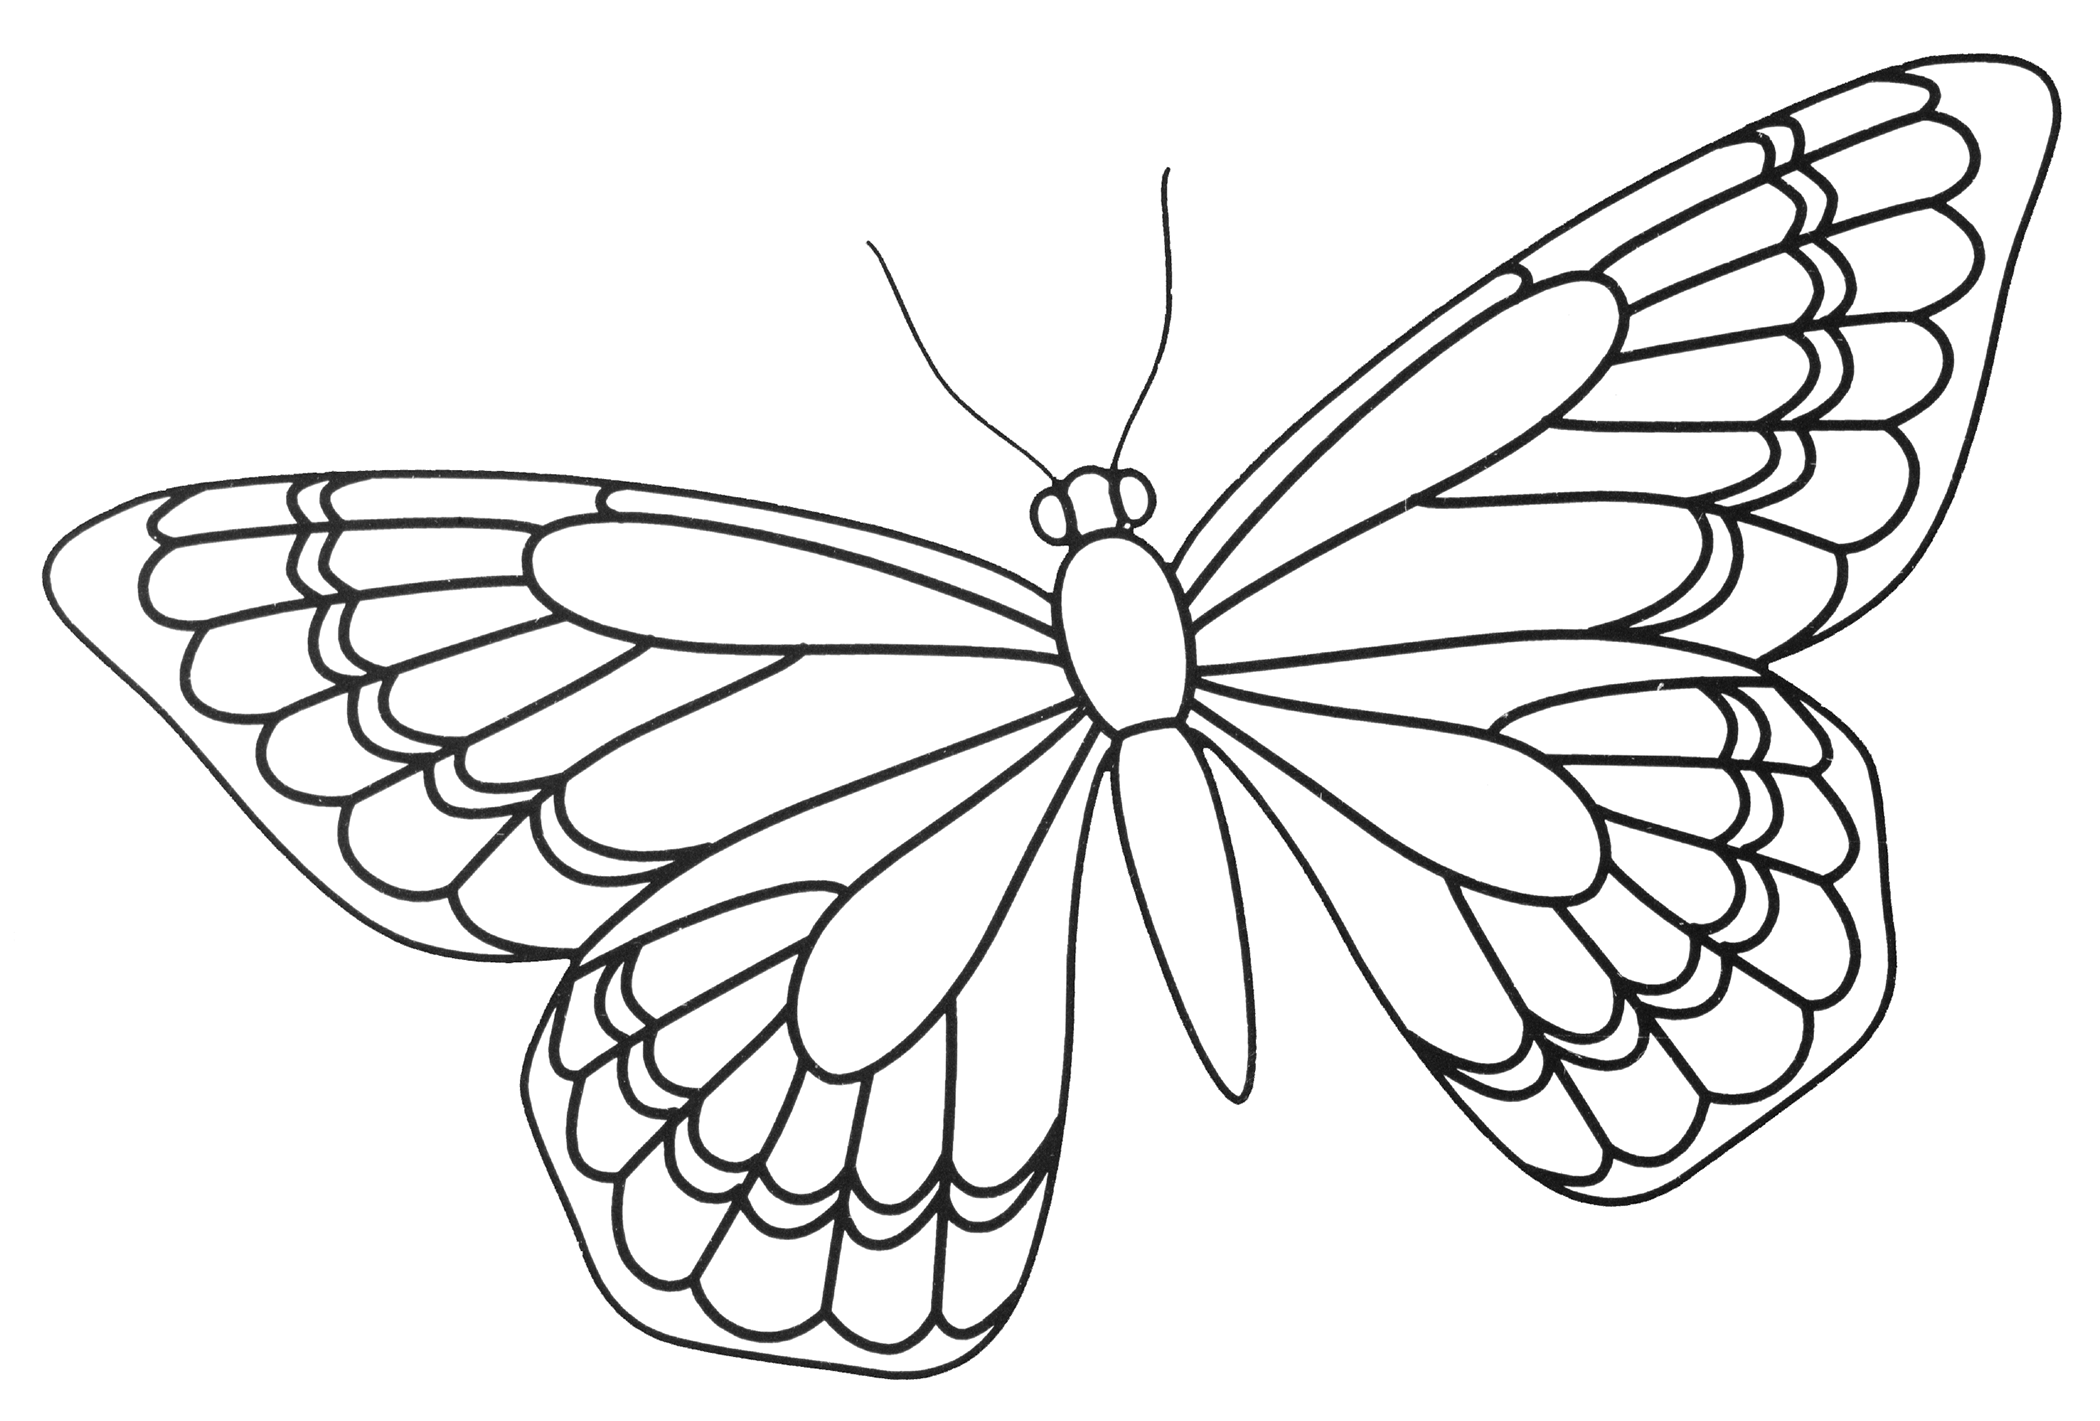 coloring outline butterfly outline of butterfly free download on clipartmag butterfly outline coloring